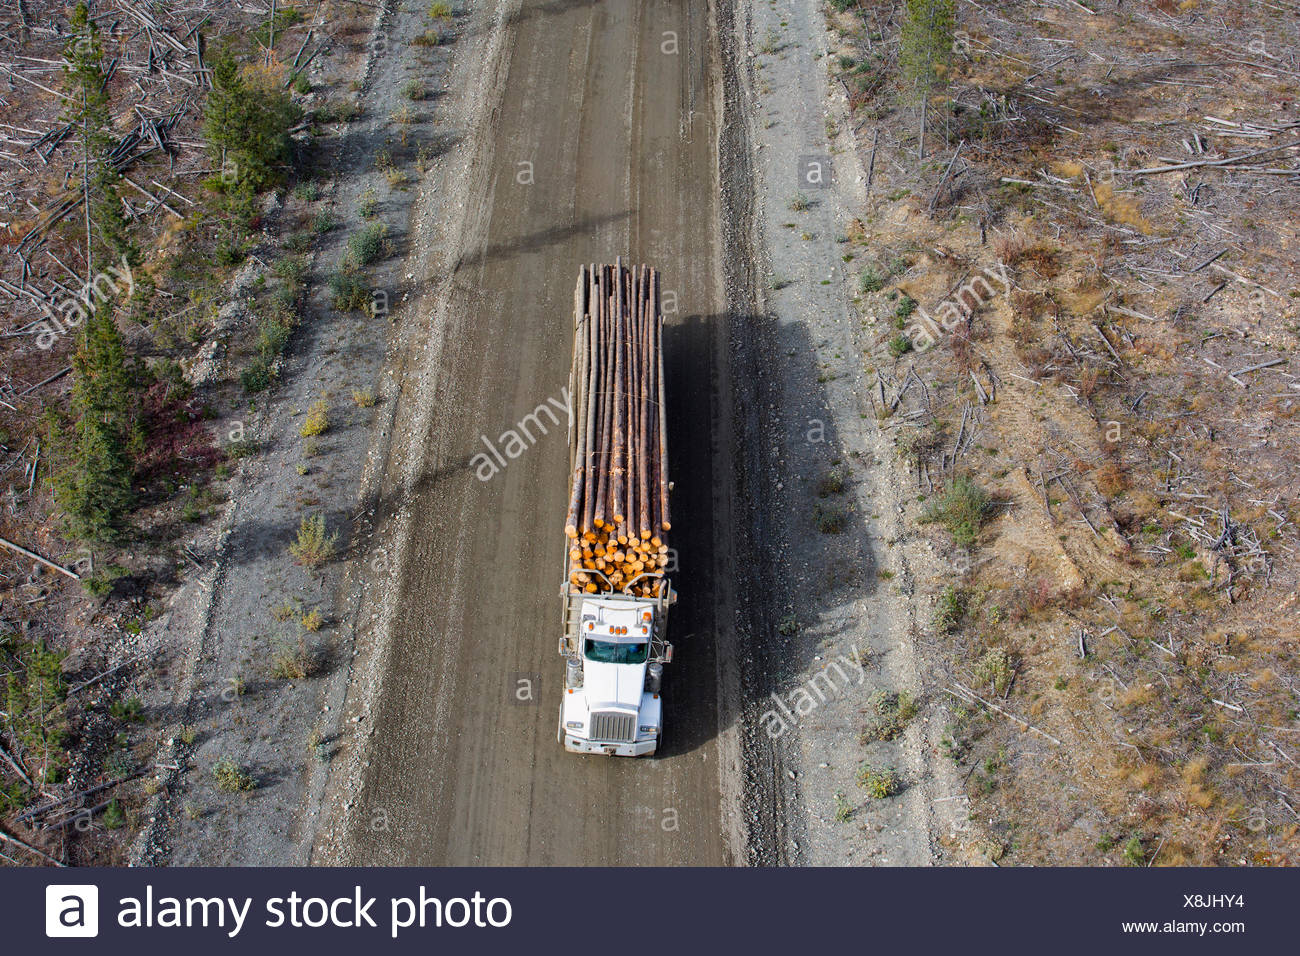 Semi-truck carrying timber on dirt road - Stock Image